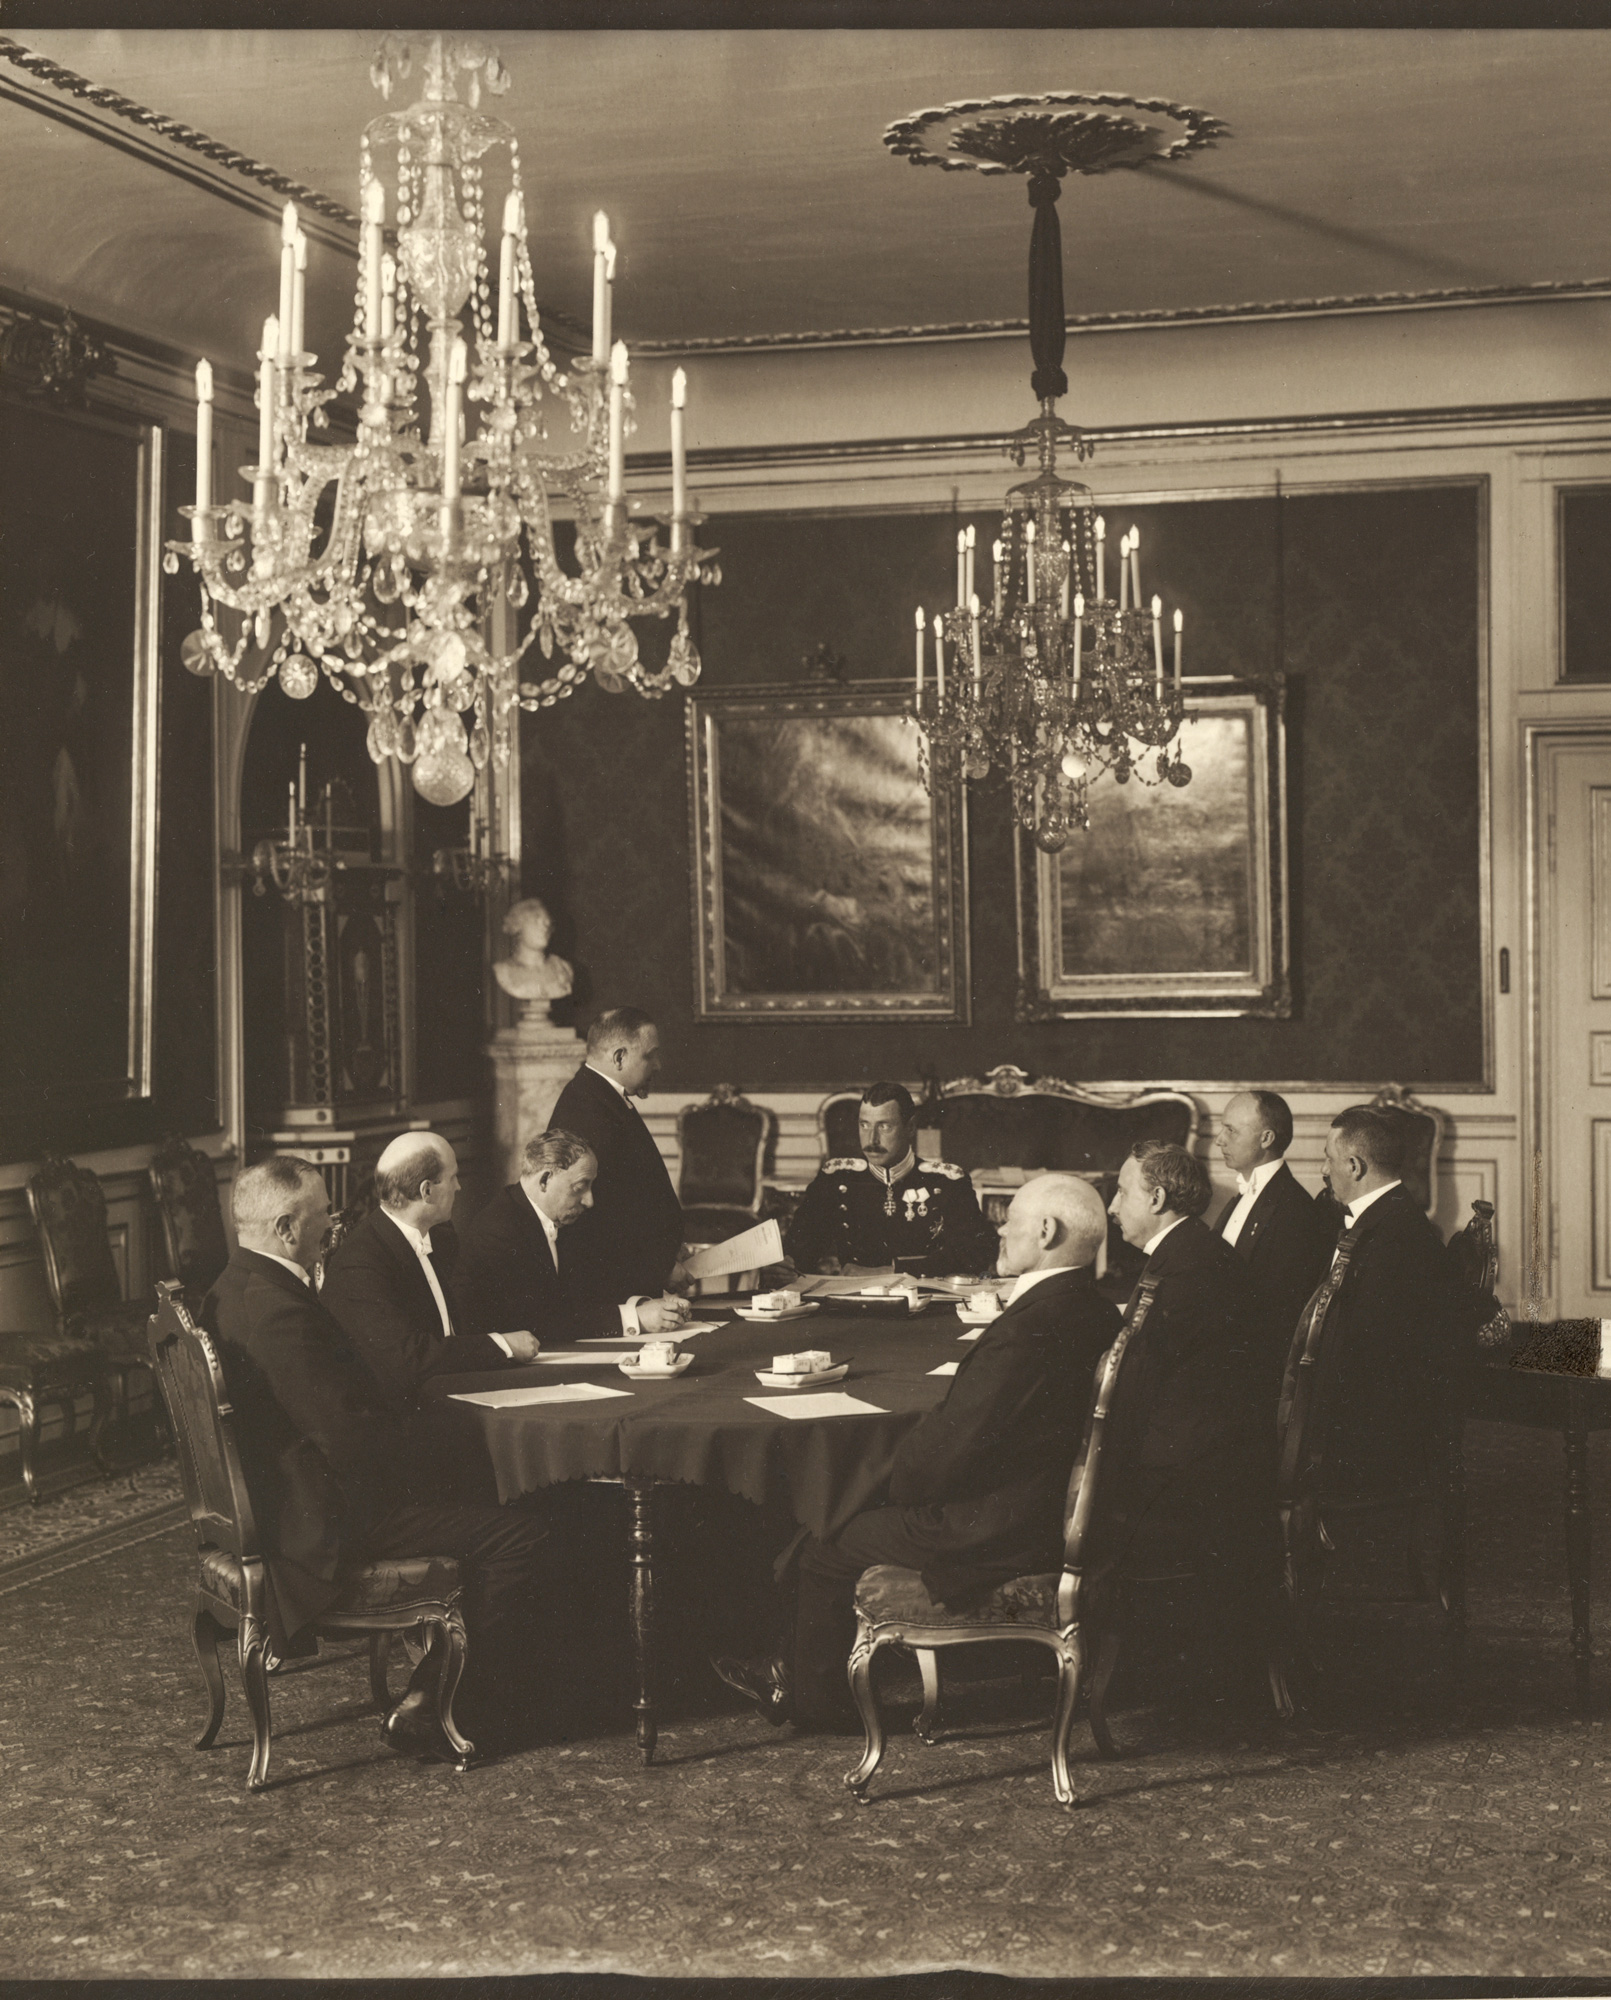 King Christian X signs the revised constitution of 1915